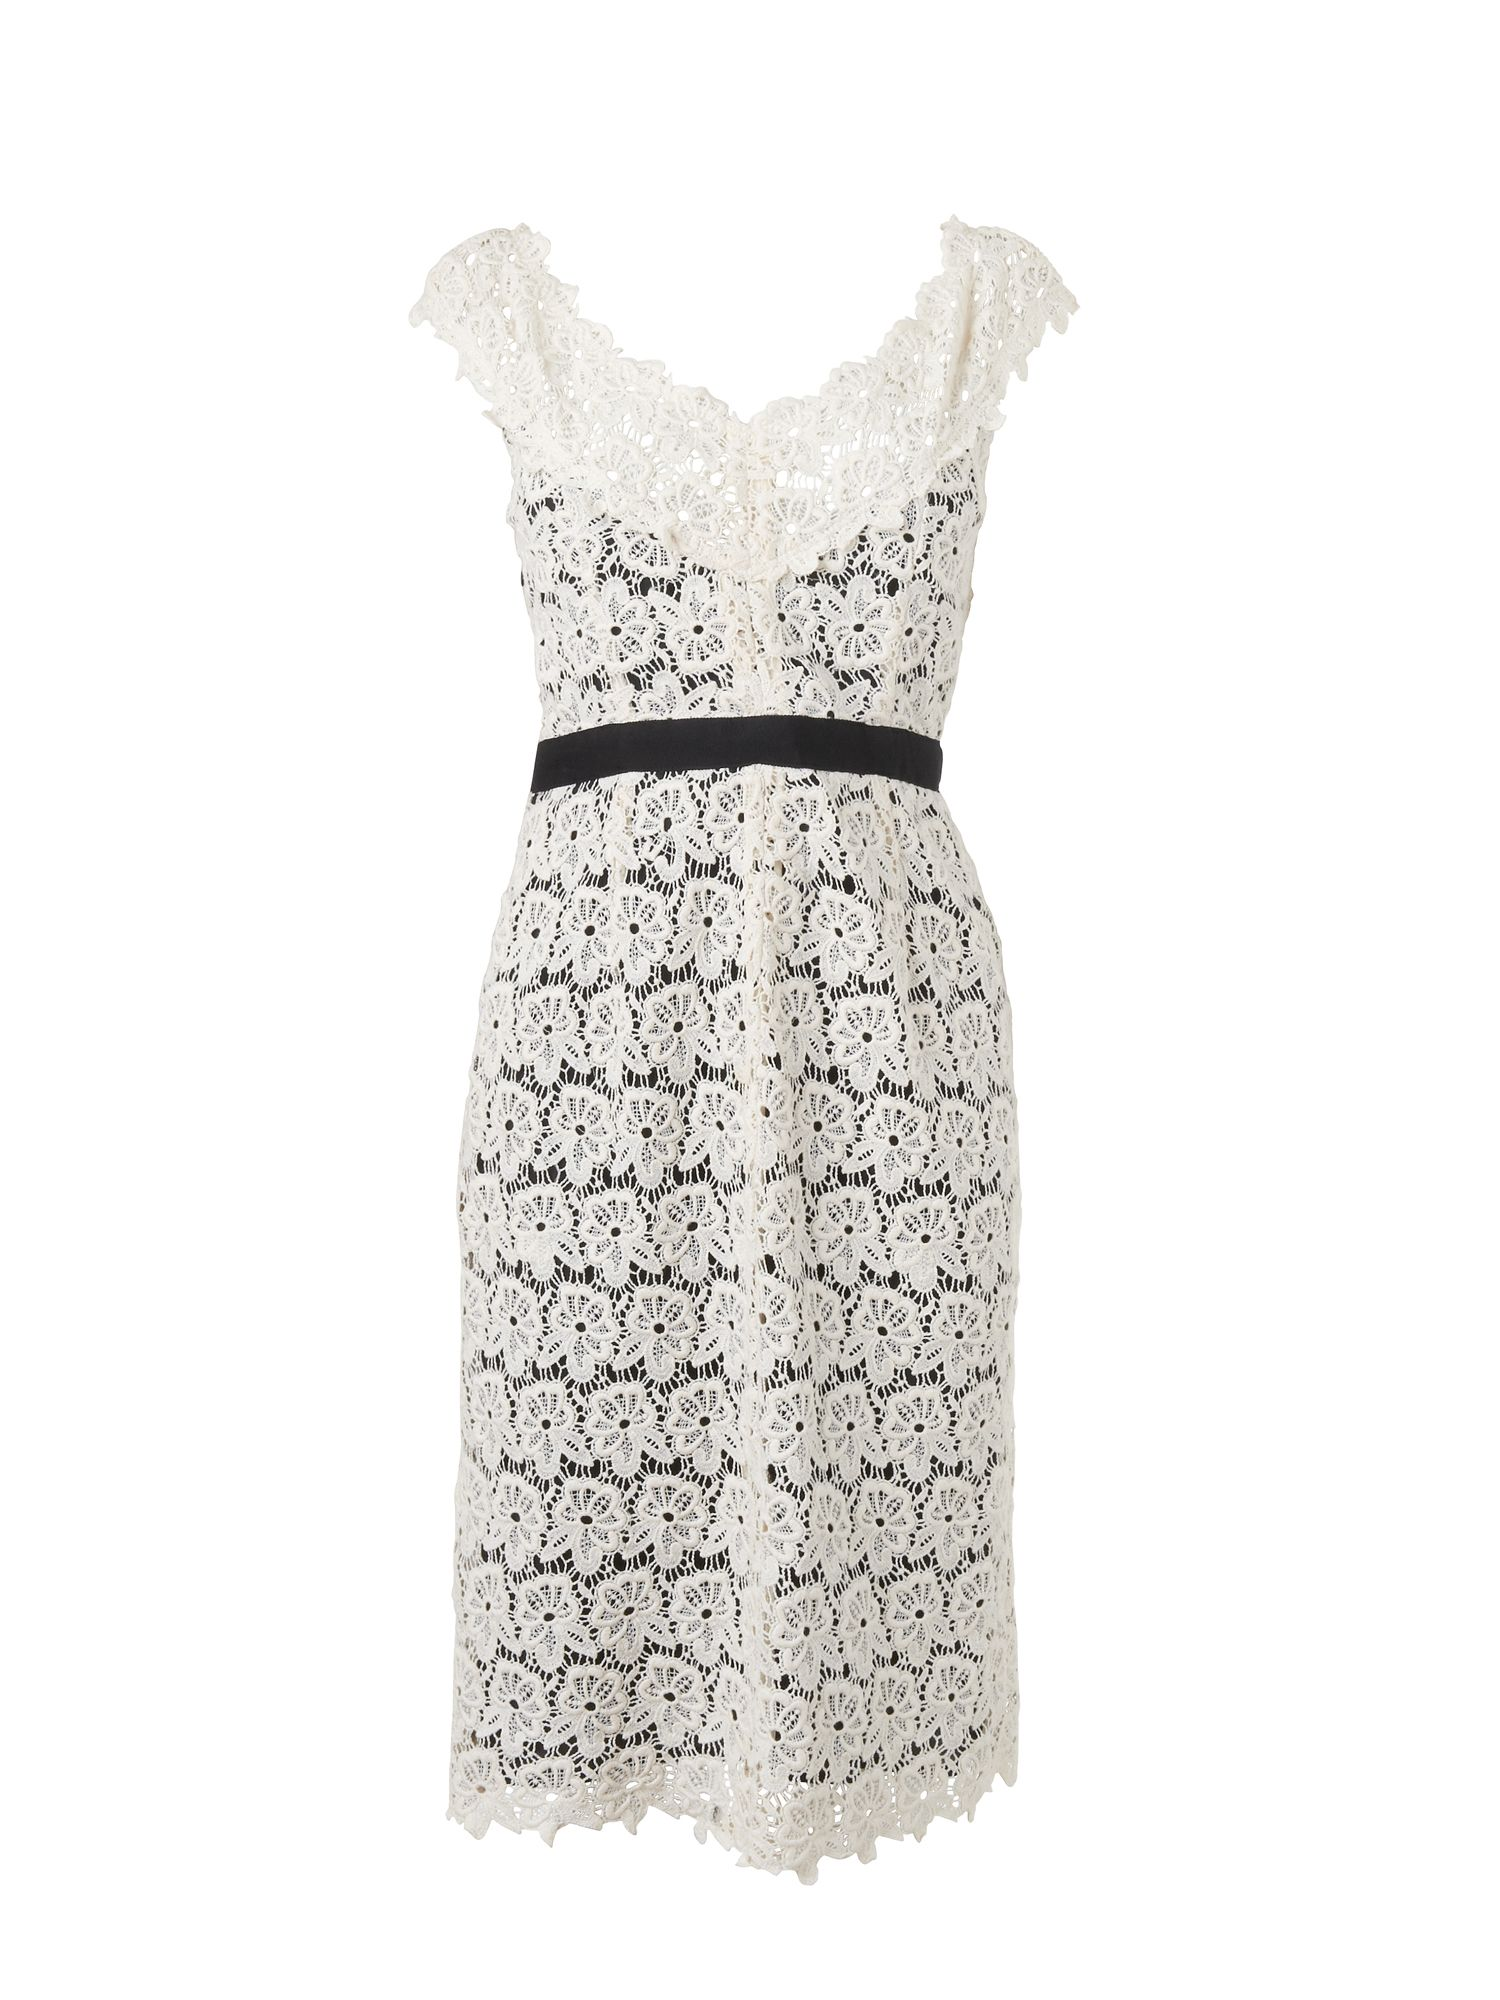 Broderie lace dress with contrast tr